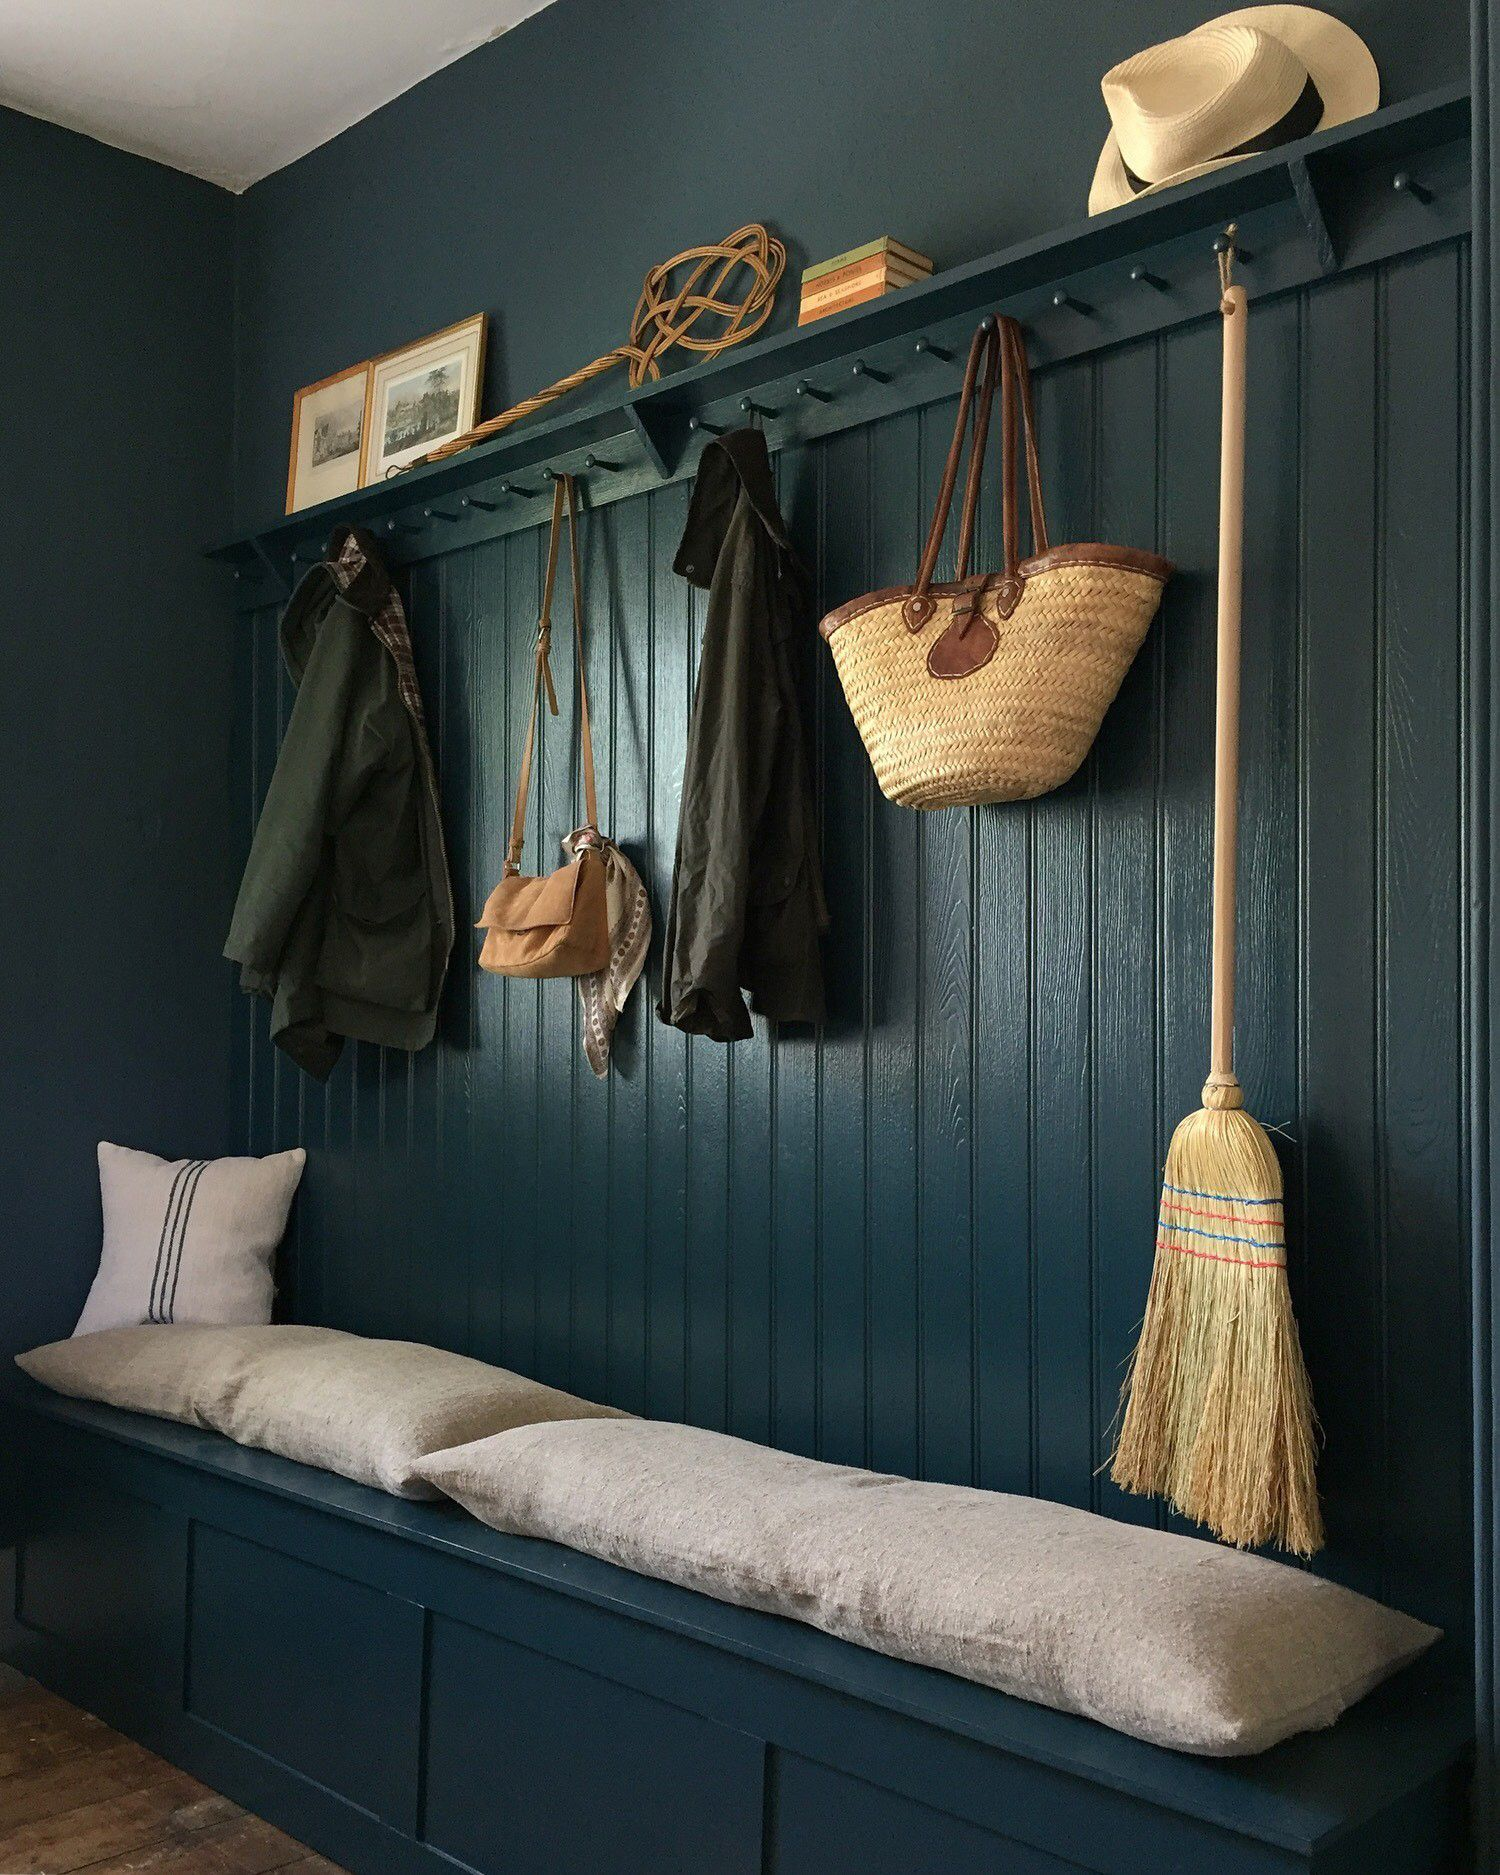 Embracing The Blue Kitchen: By Embracing The Darkness In Her North Facing Boot Room